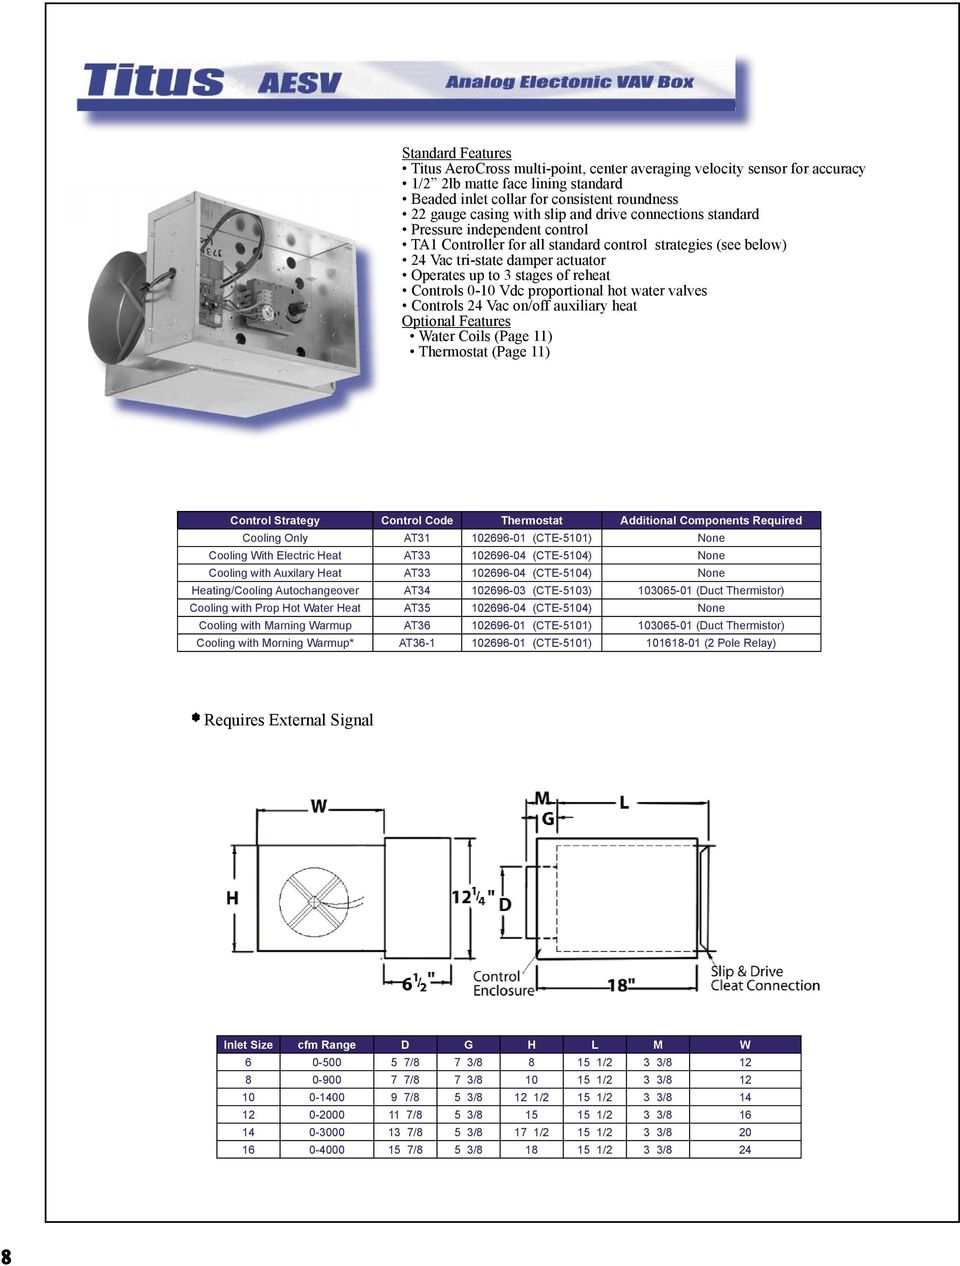 0-10 Vdc proportional hot water valves Controls 24 Vac on/off auxiliary heat Optional Features Water Coils (Page 11) Thermostat (Page 11) Control Strategy Control Code Thermostat Additional